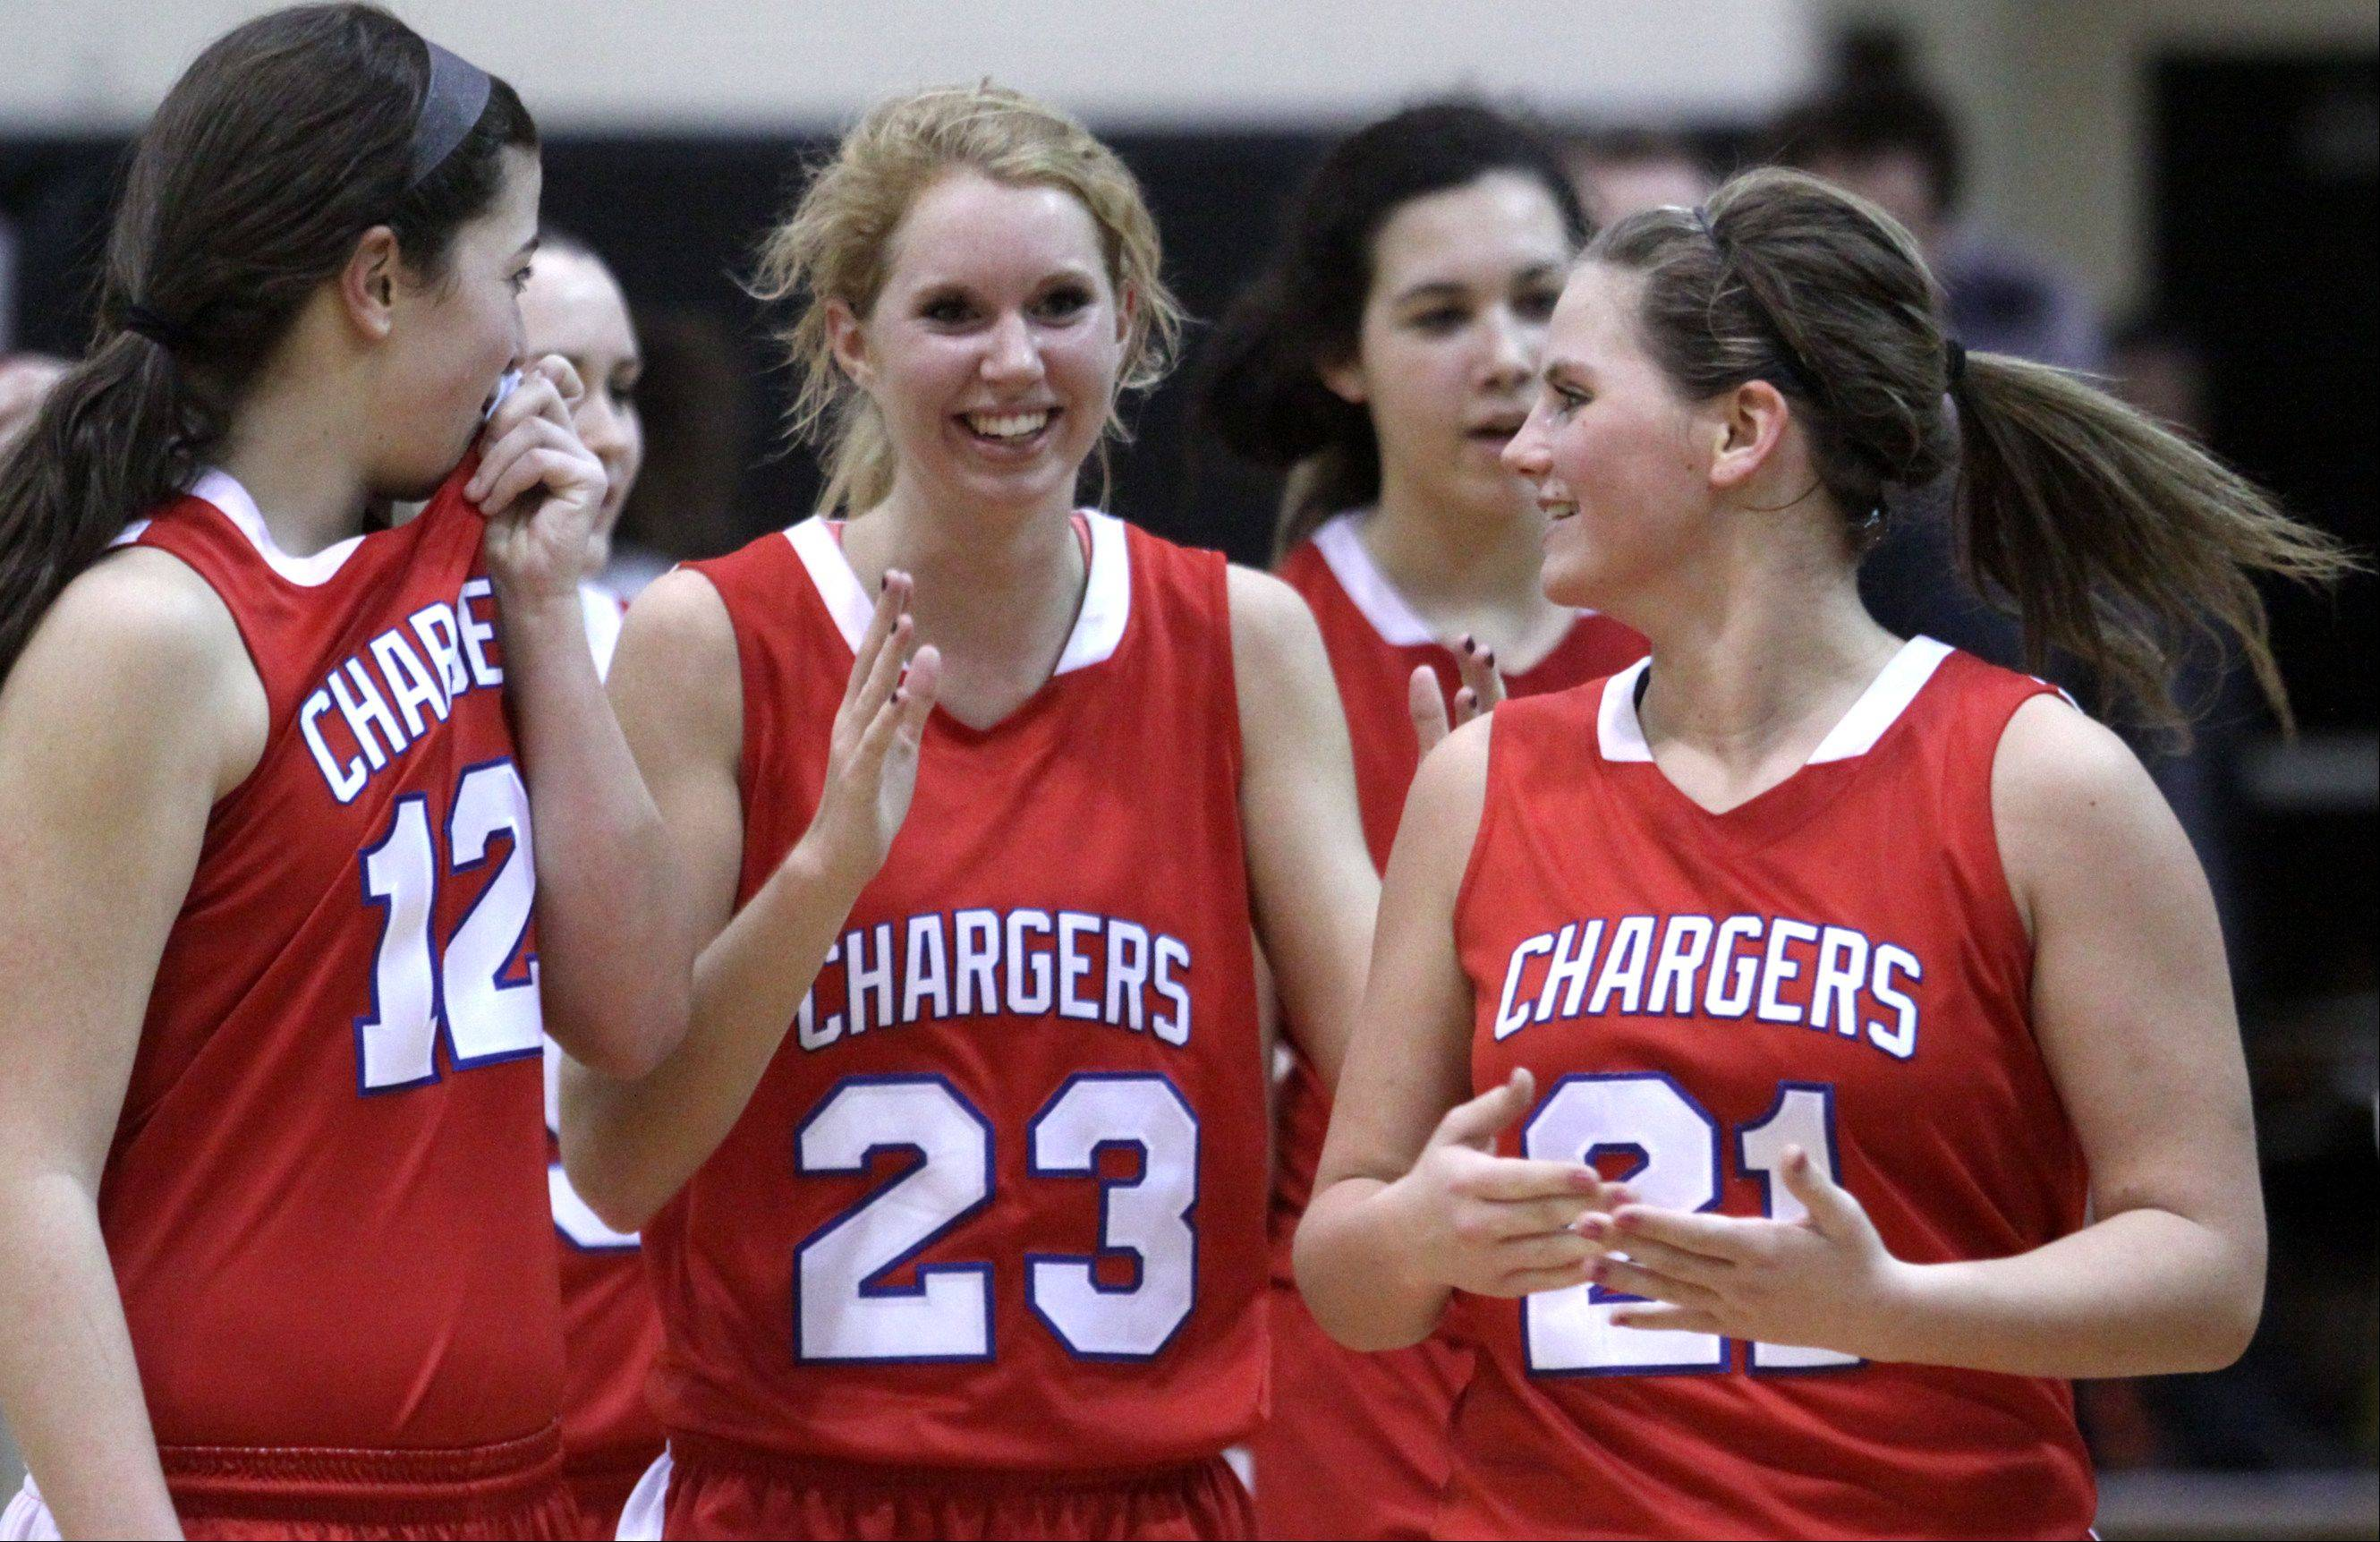 From left, Dundee-Crown's Lauren Lococo, Jillian Weichmann, and Stephanie Magsamen are all smiles after beating Jacobs.